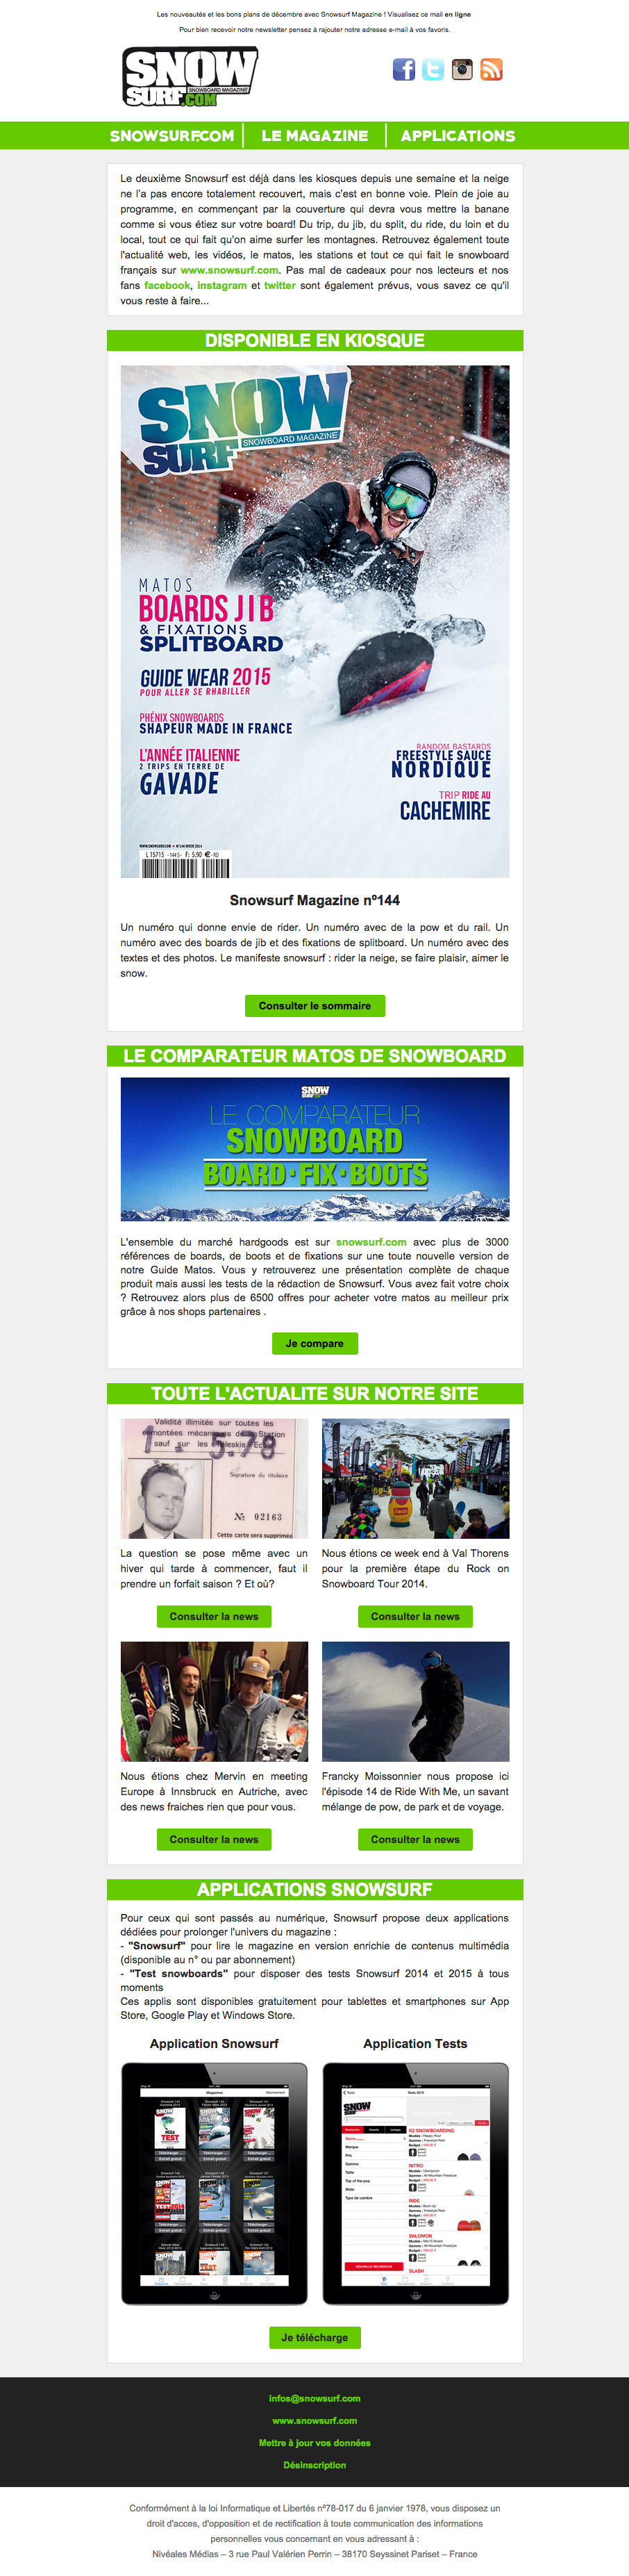 snowsurf_newsletter